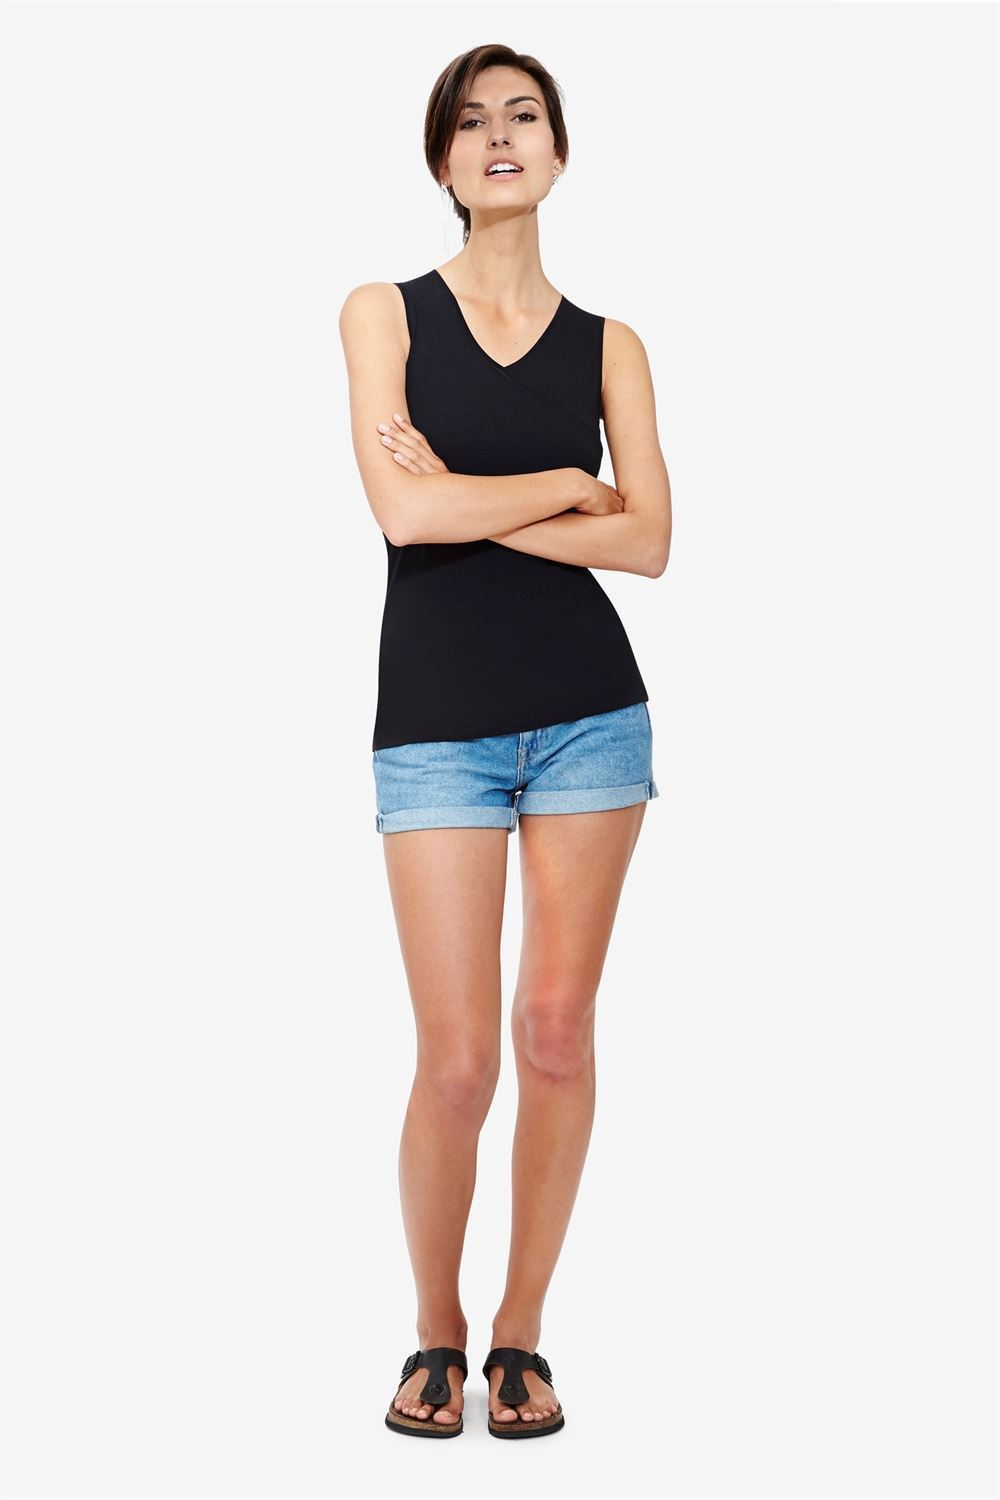 Black nursing top - classic and simple design in organic cotton - Full figur